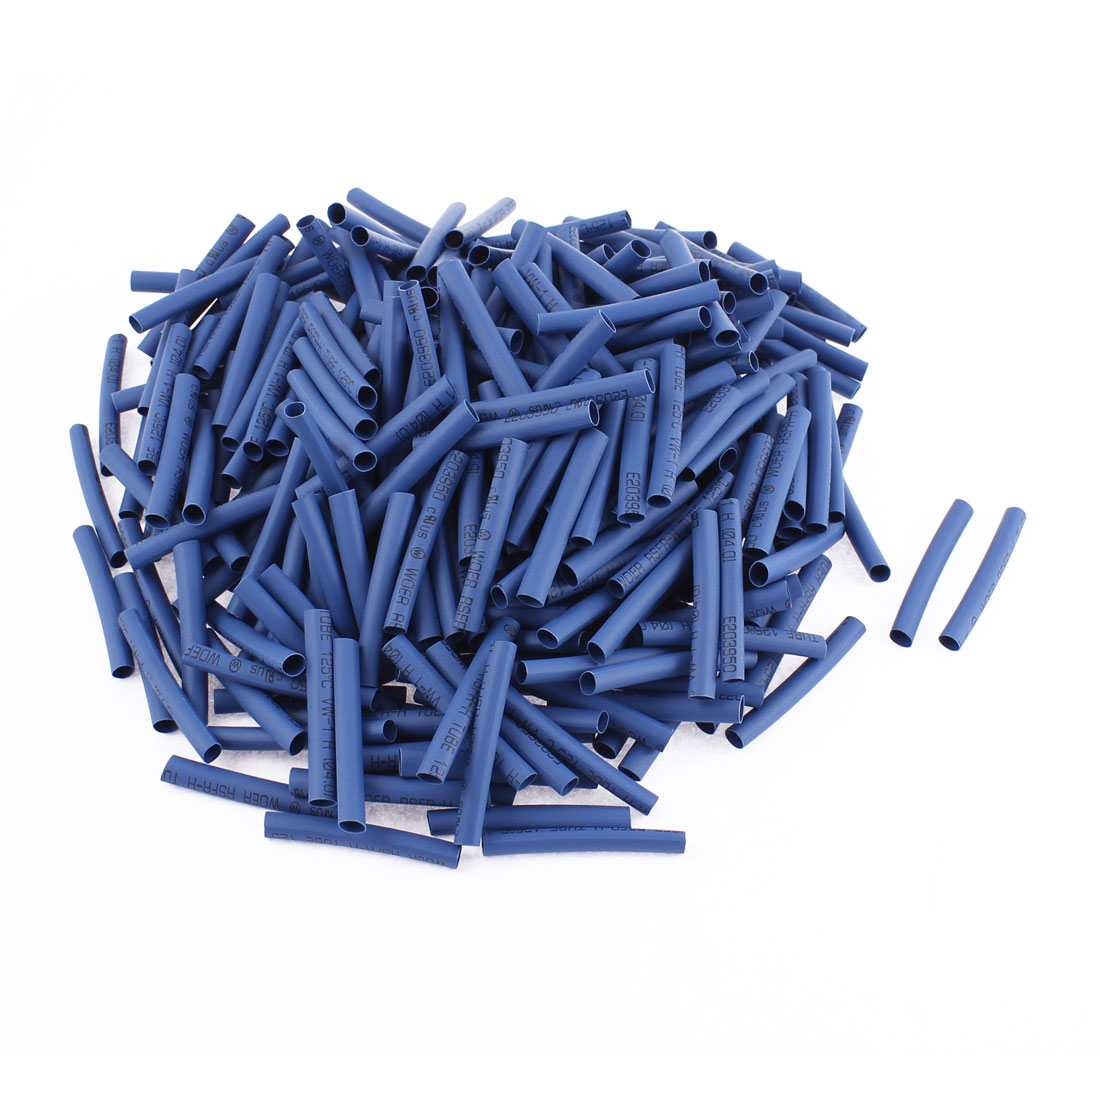 Electrical Connection Cable Sleeve 40mm Long Heat Shrink Tubing Wrap Blue 350Pcs